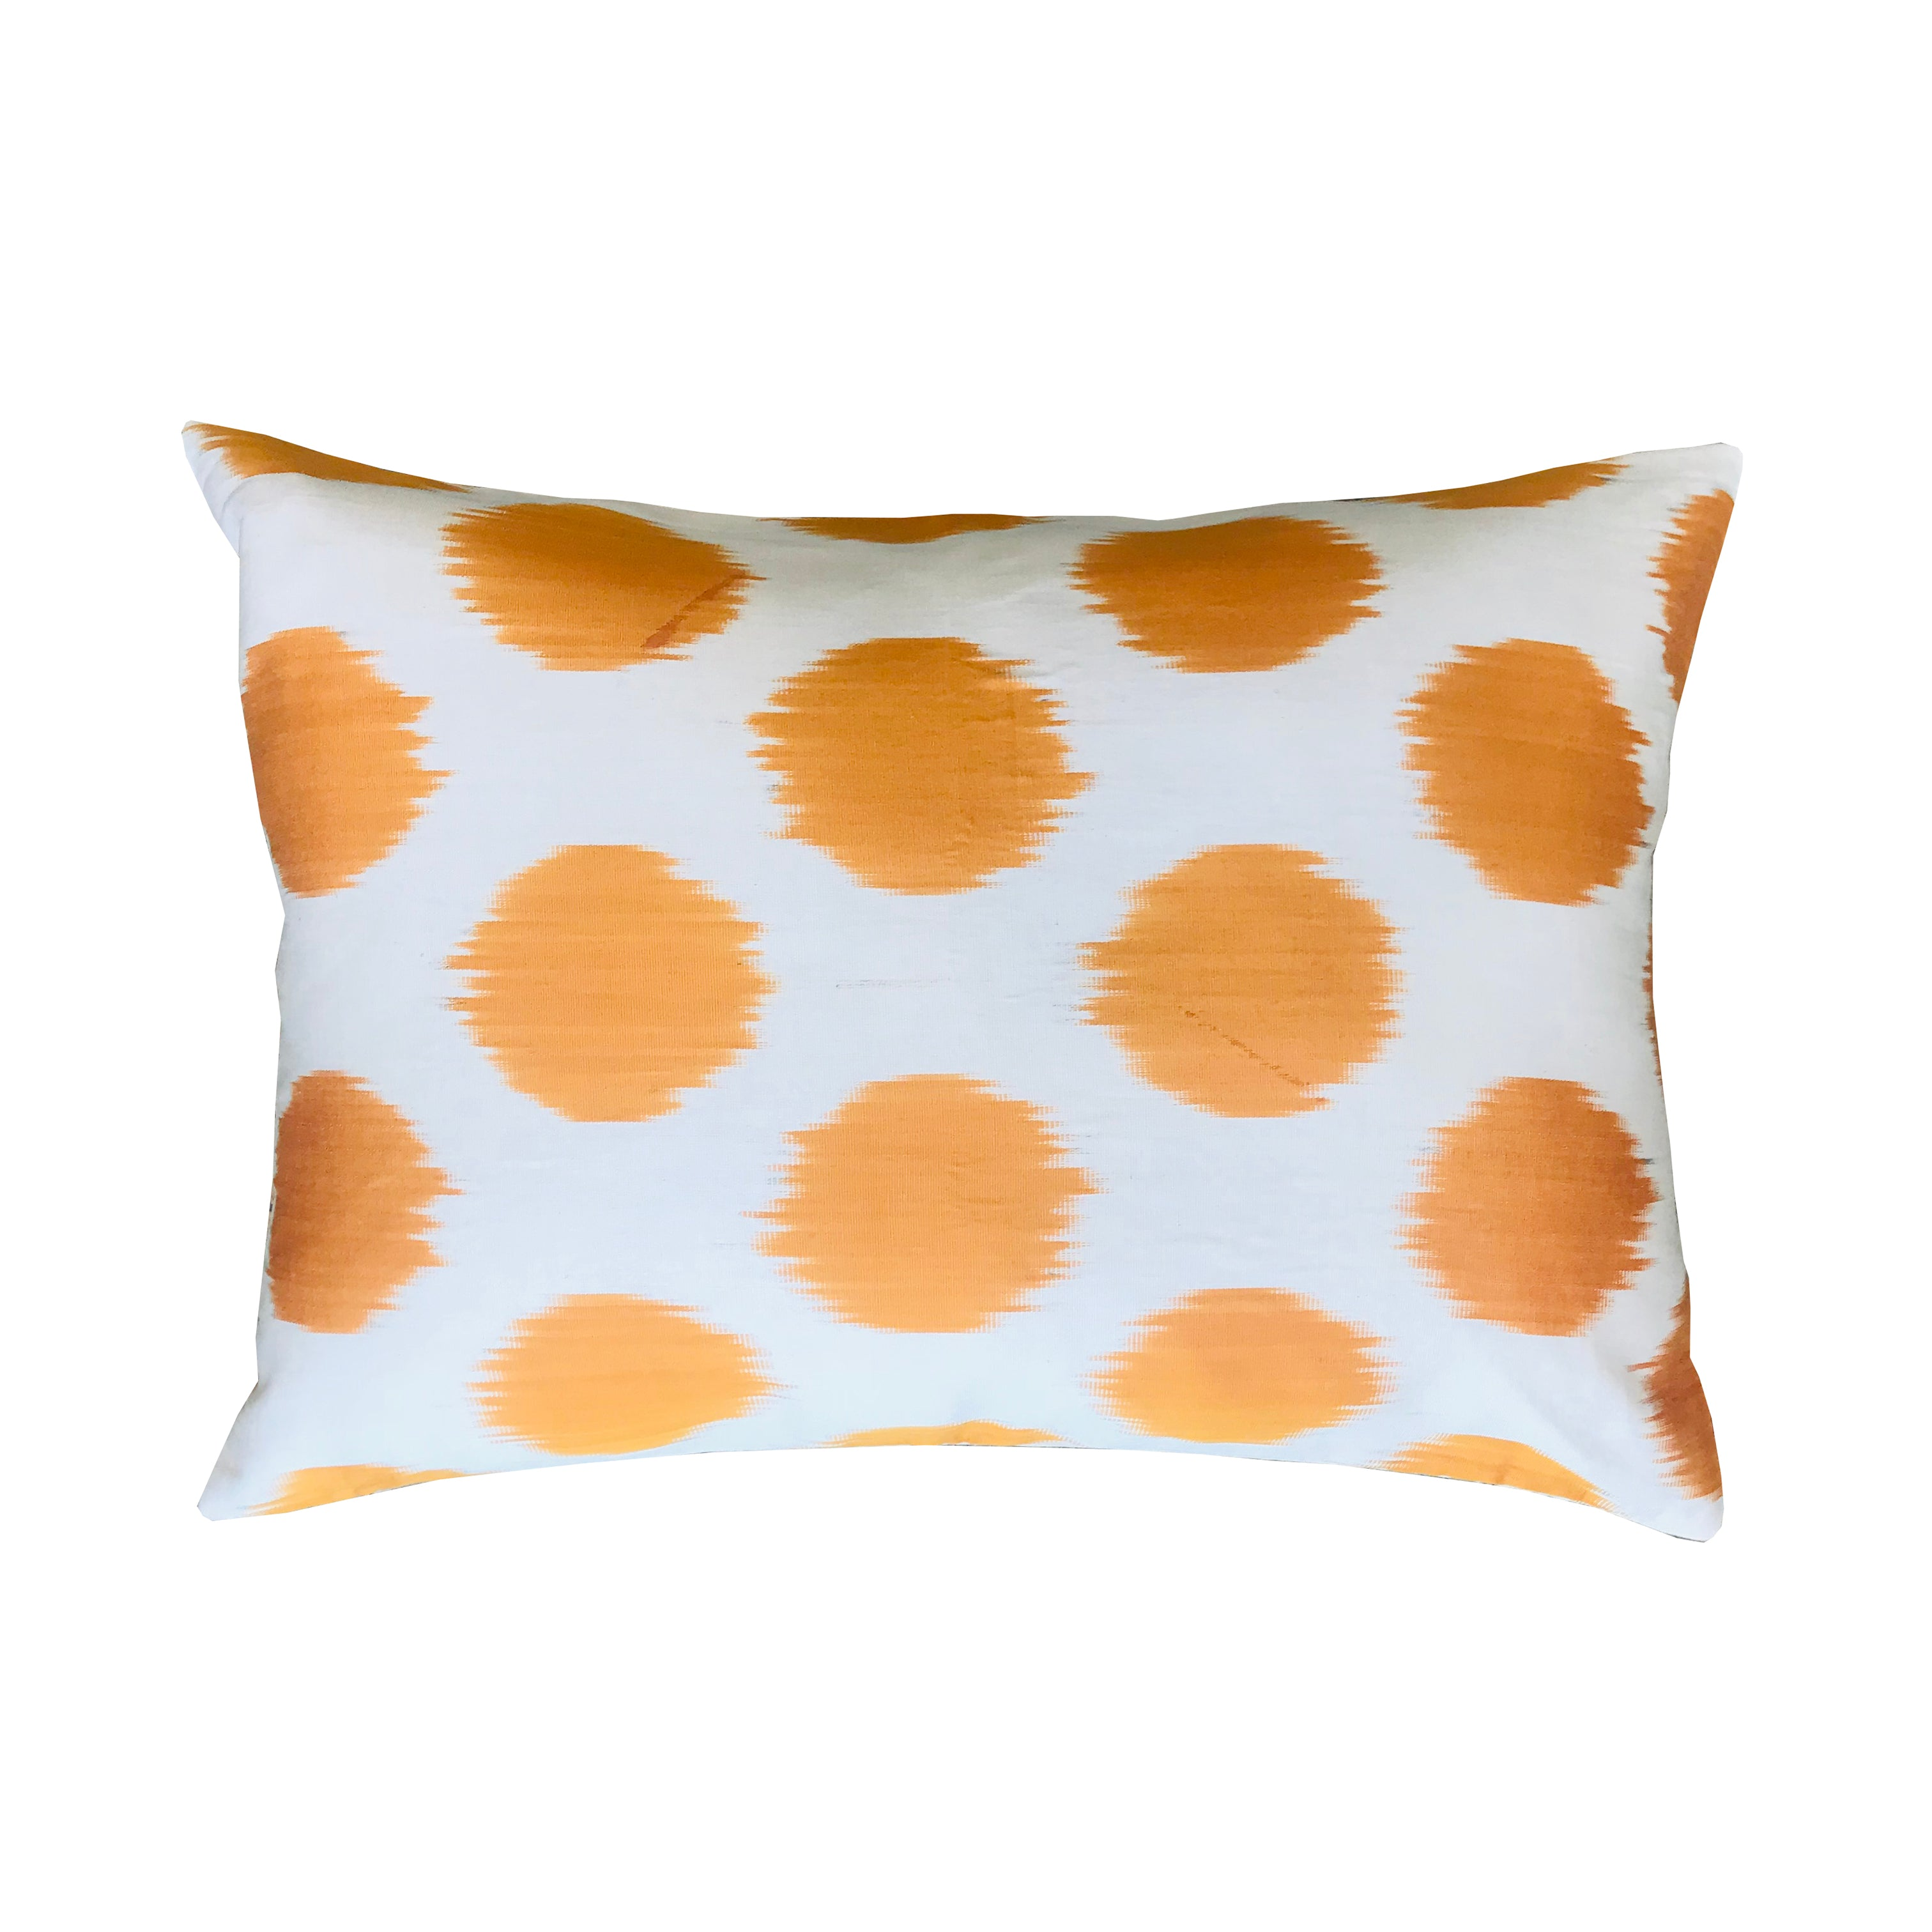 Turkish Ikat Pillow - Bright Orange & White